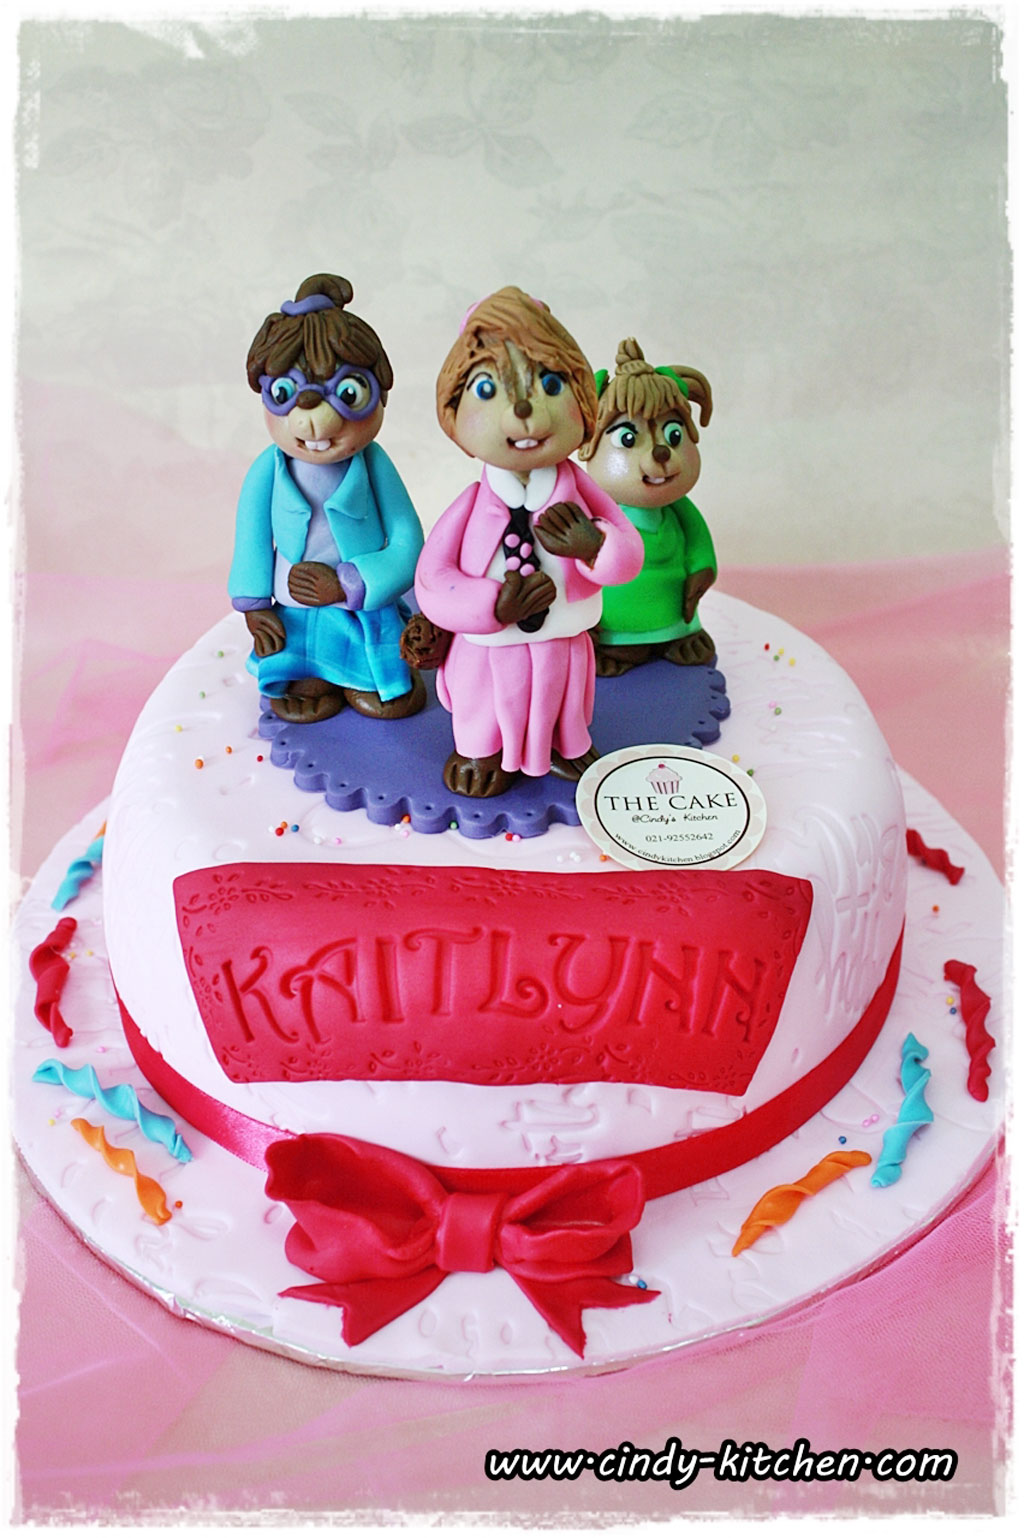 Fondant Cake Design For Birthday : Cute Fondant Chipettes Birthday Cake Designs Birthday Cake ...